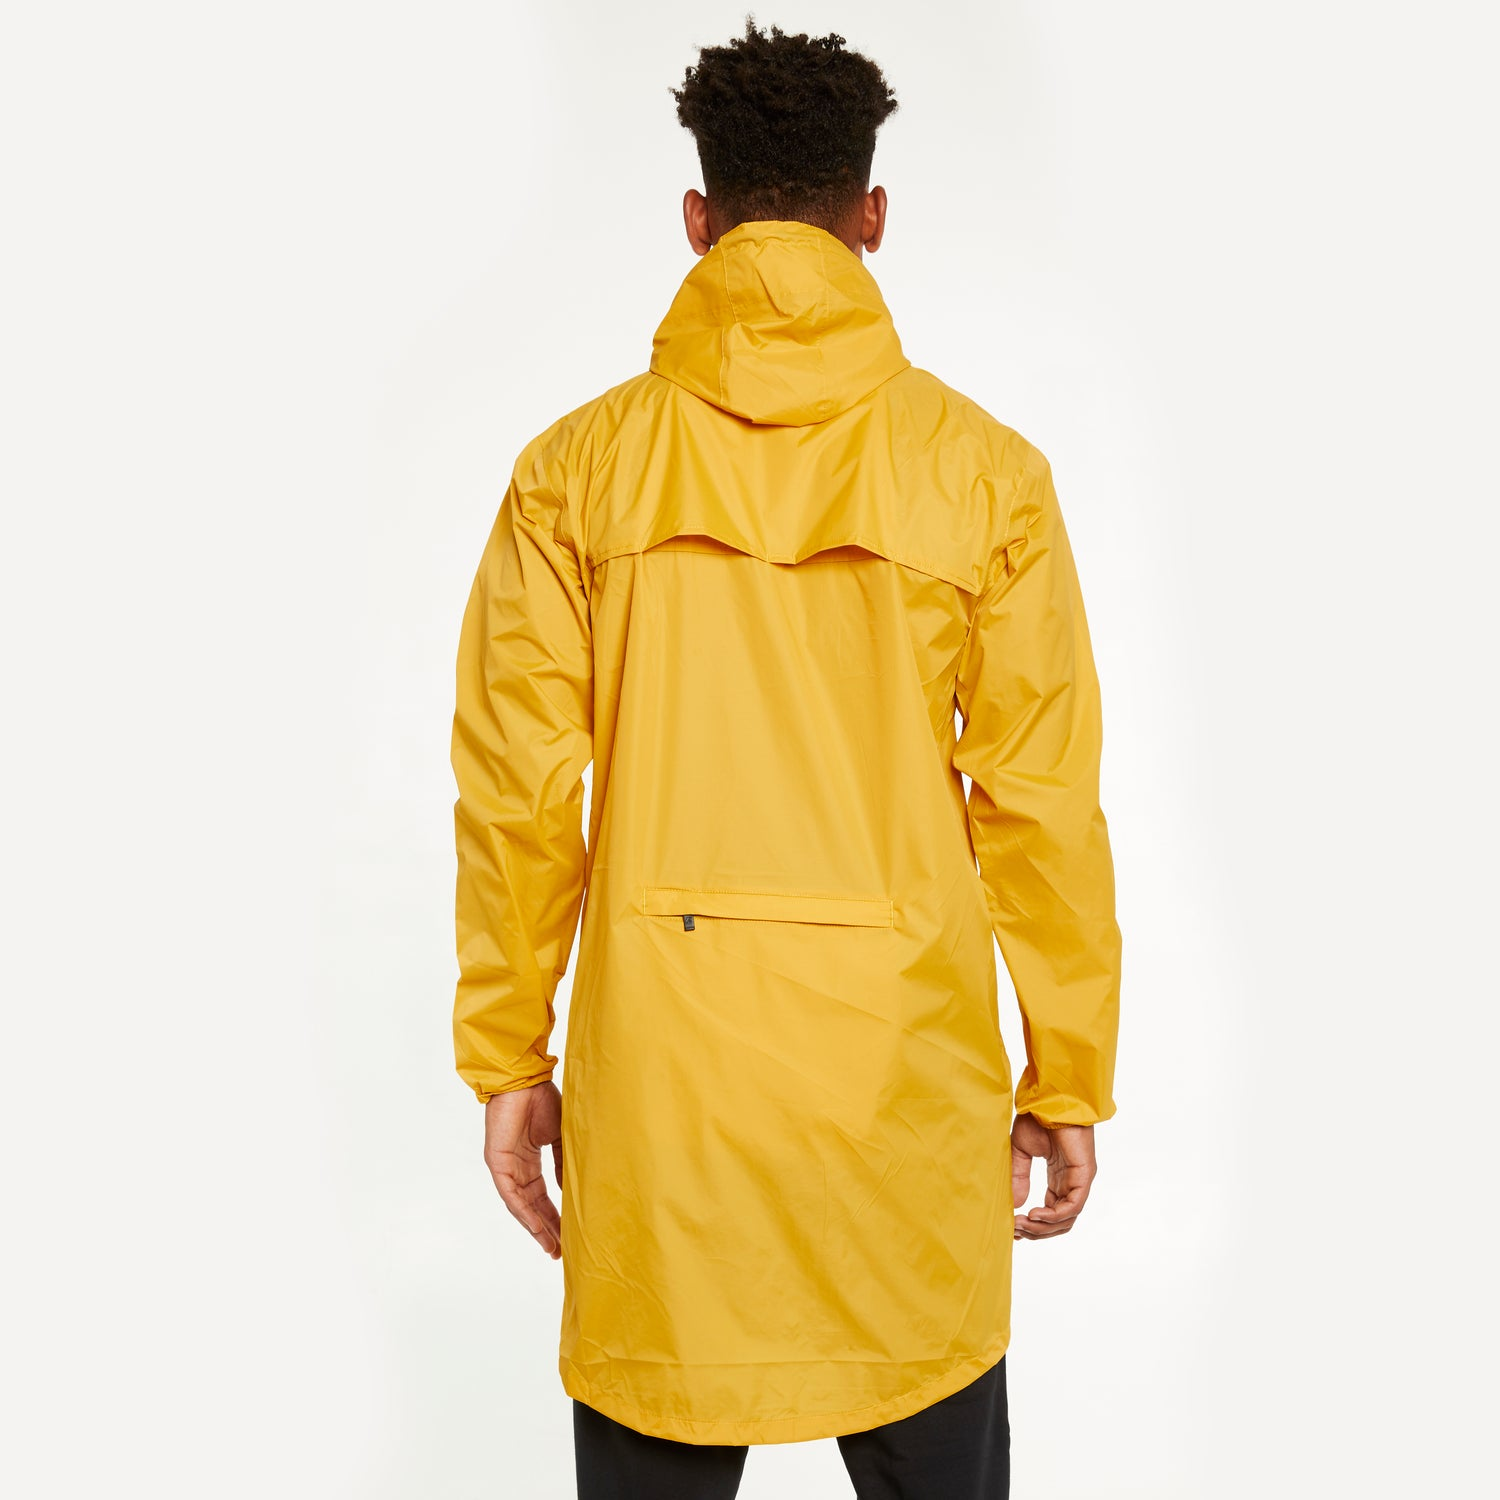 Men's Le Vrai 3.0 Eiffel Yellow Mustard